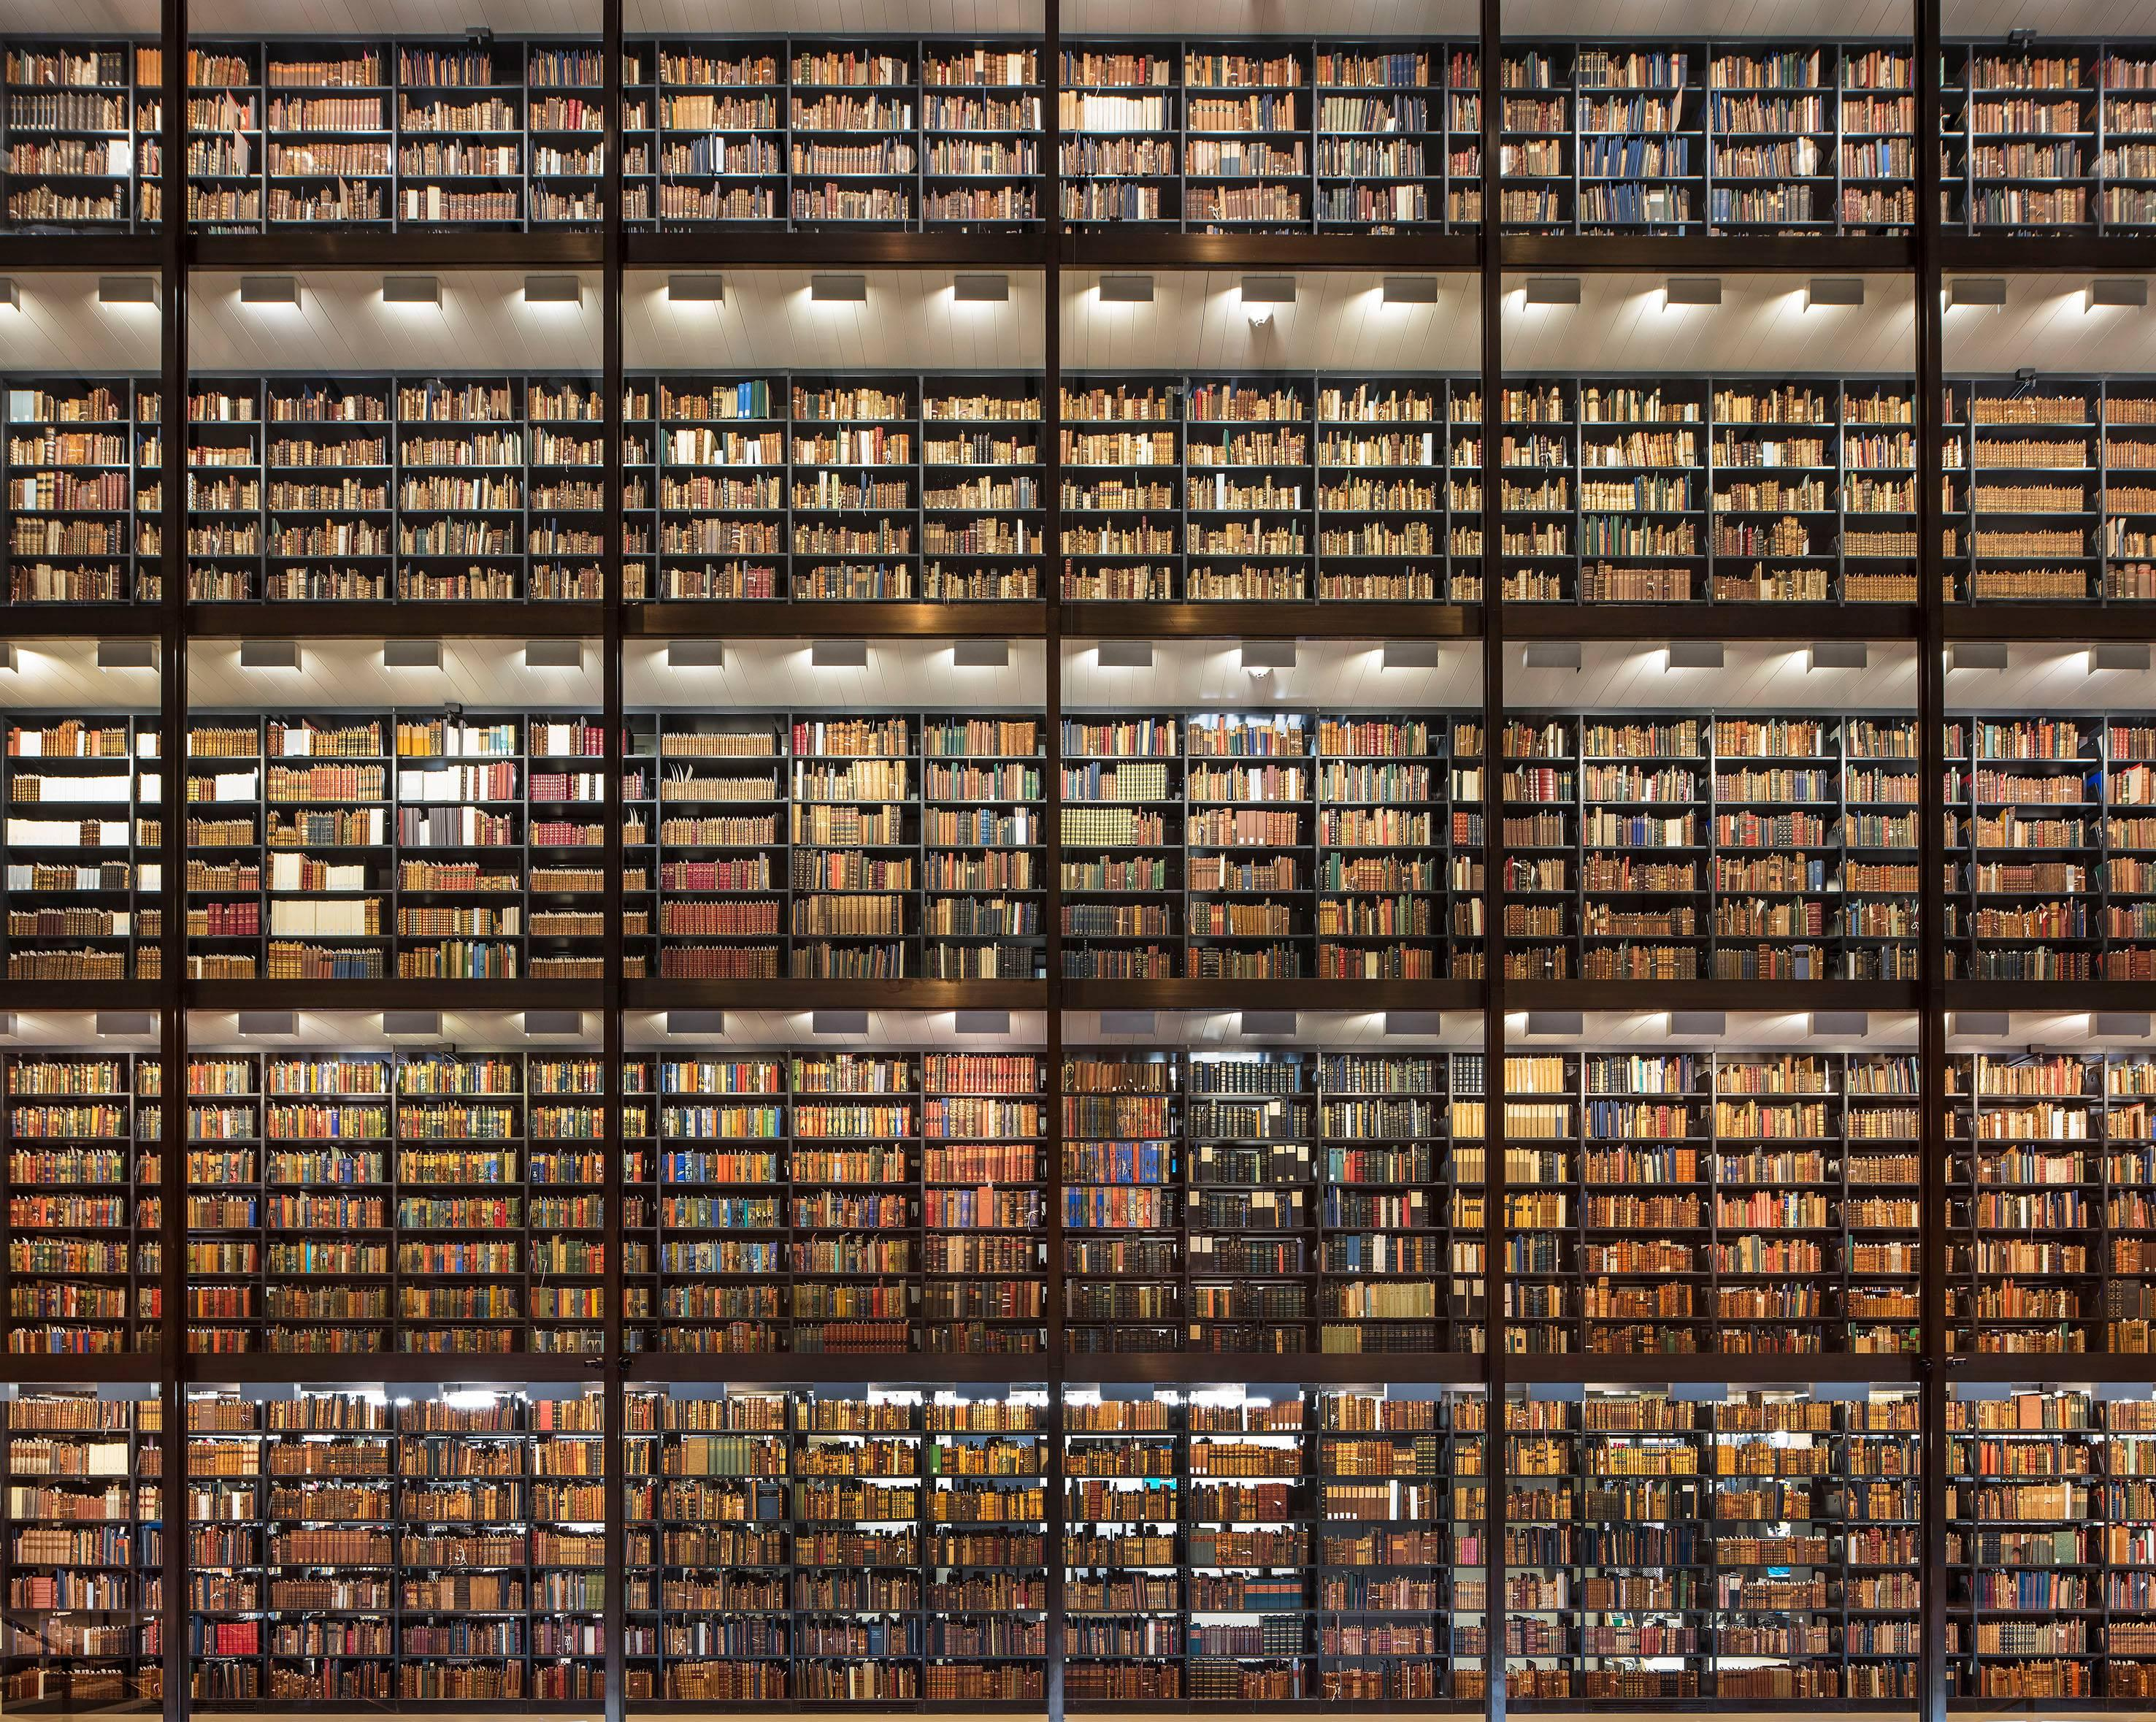 Shining Wall of Books,  Beinecke Rare Books and Manuscript Library, New Haven